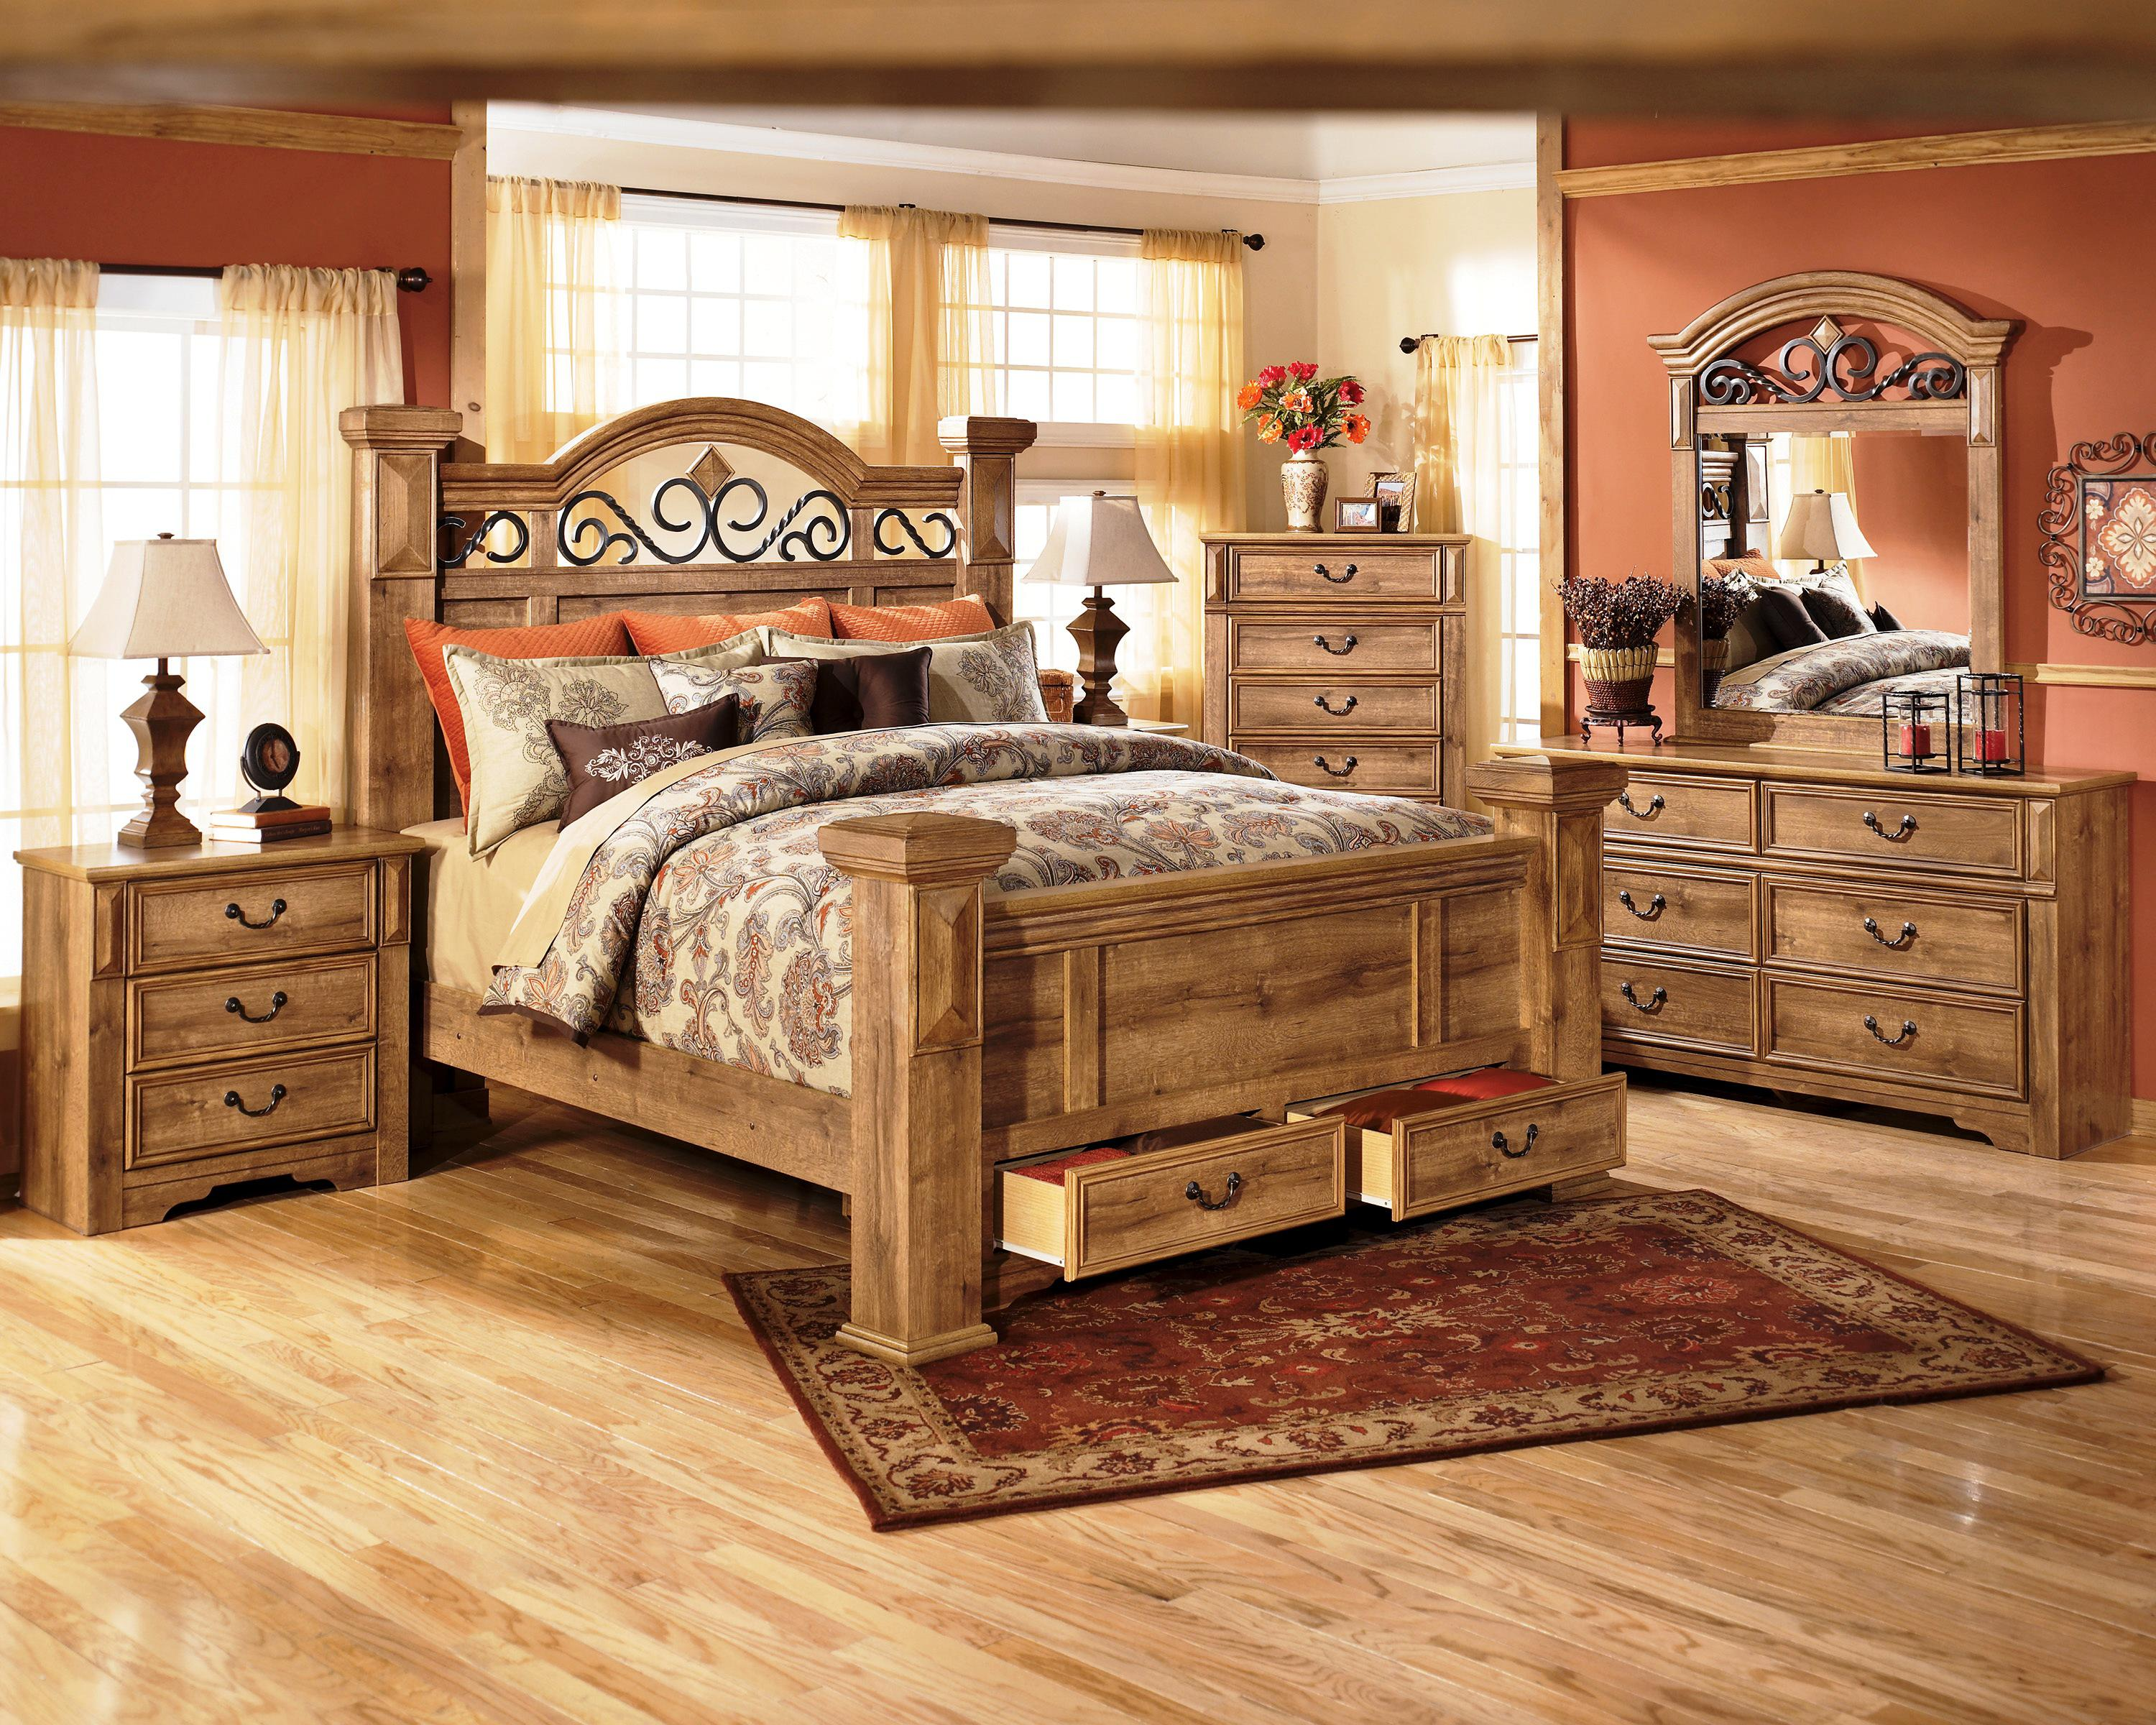 Image of: King Bedroom Sets Costco